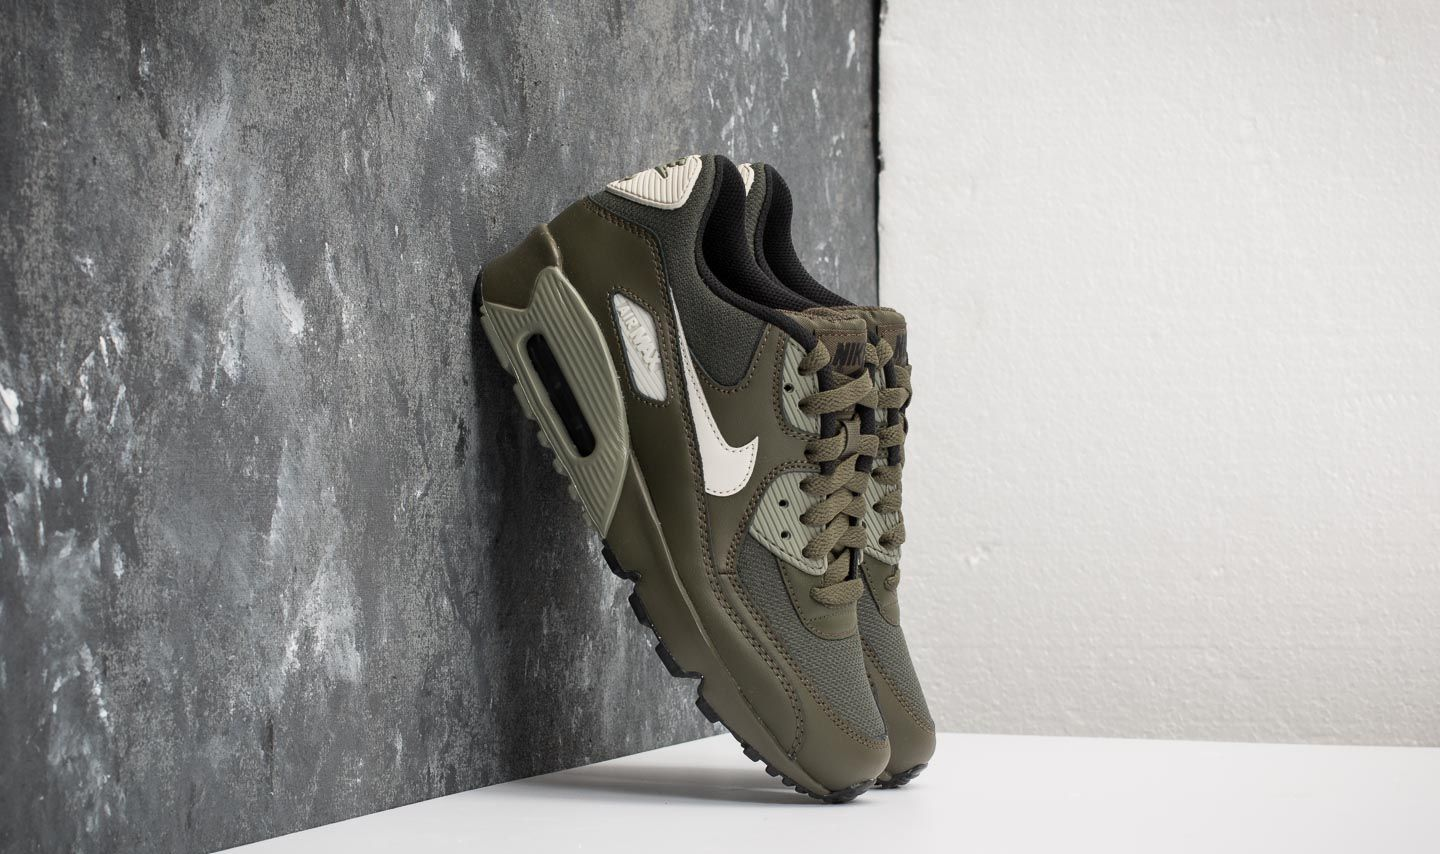 068028c6557b Nike Air Max 90 Mesh (GS) Cargo Khaki  Light Bone